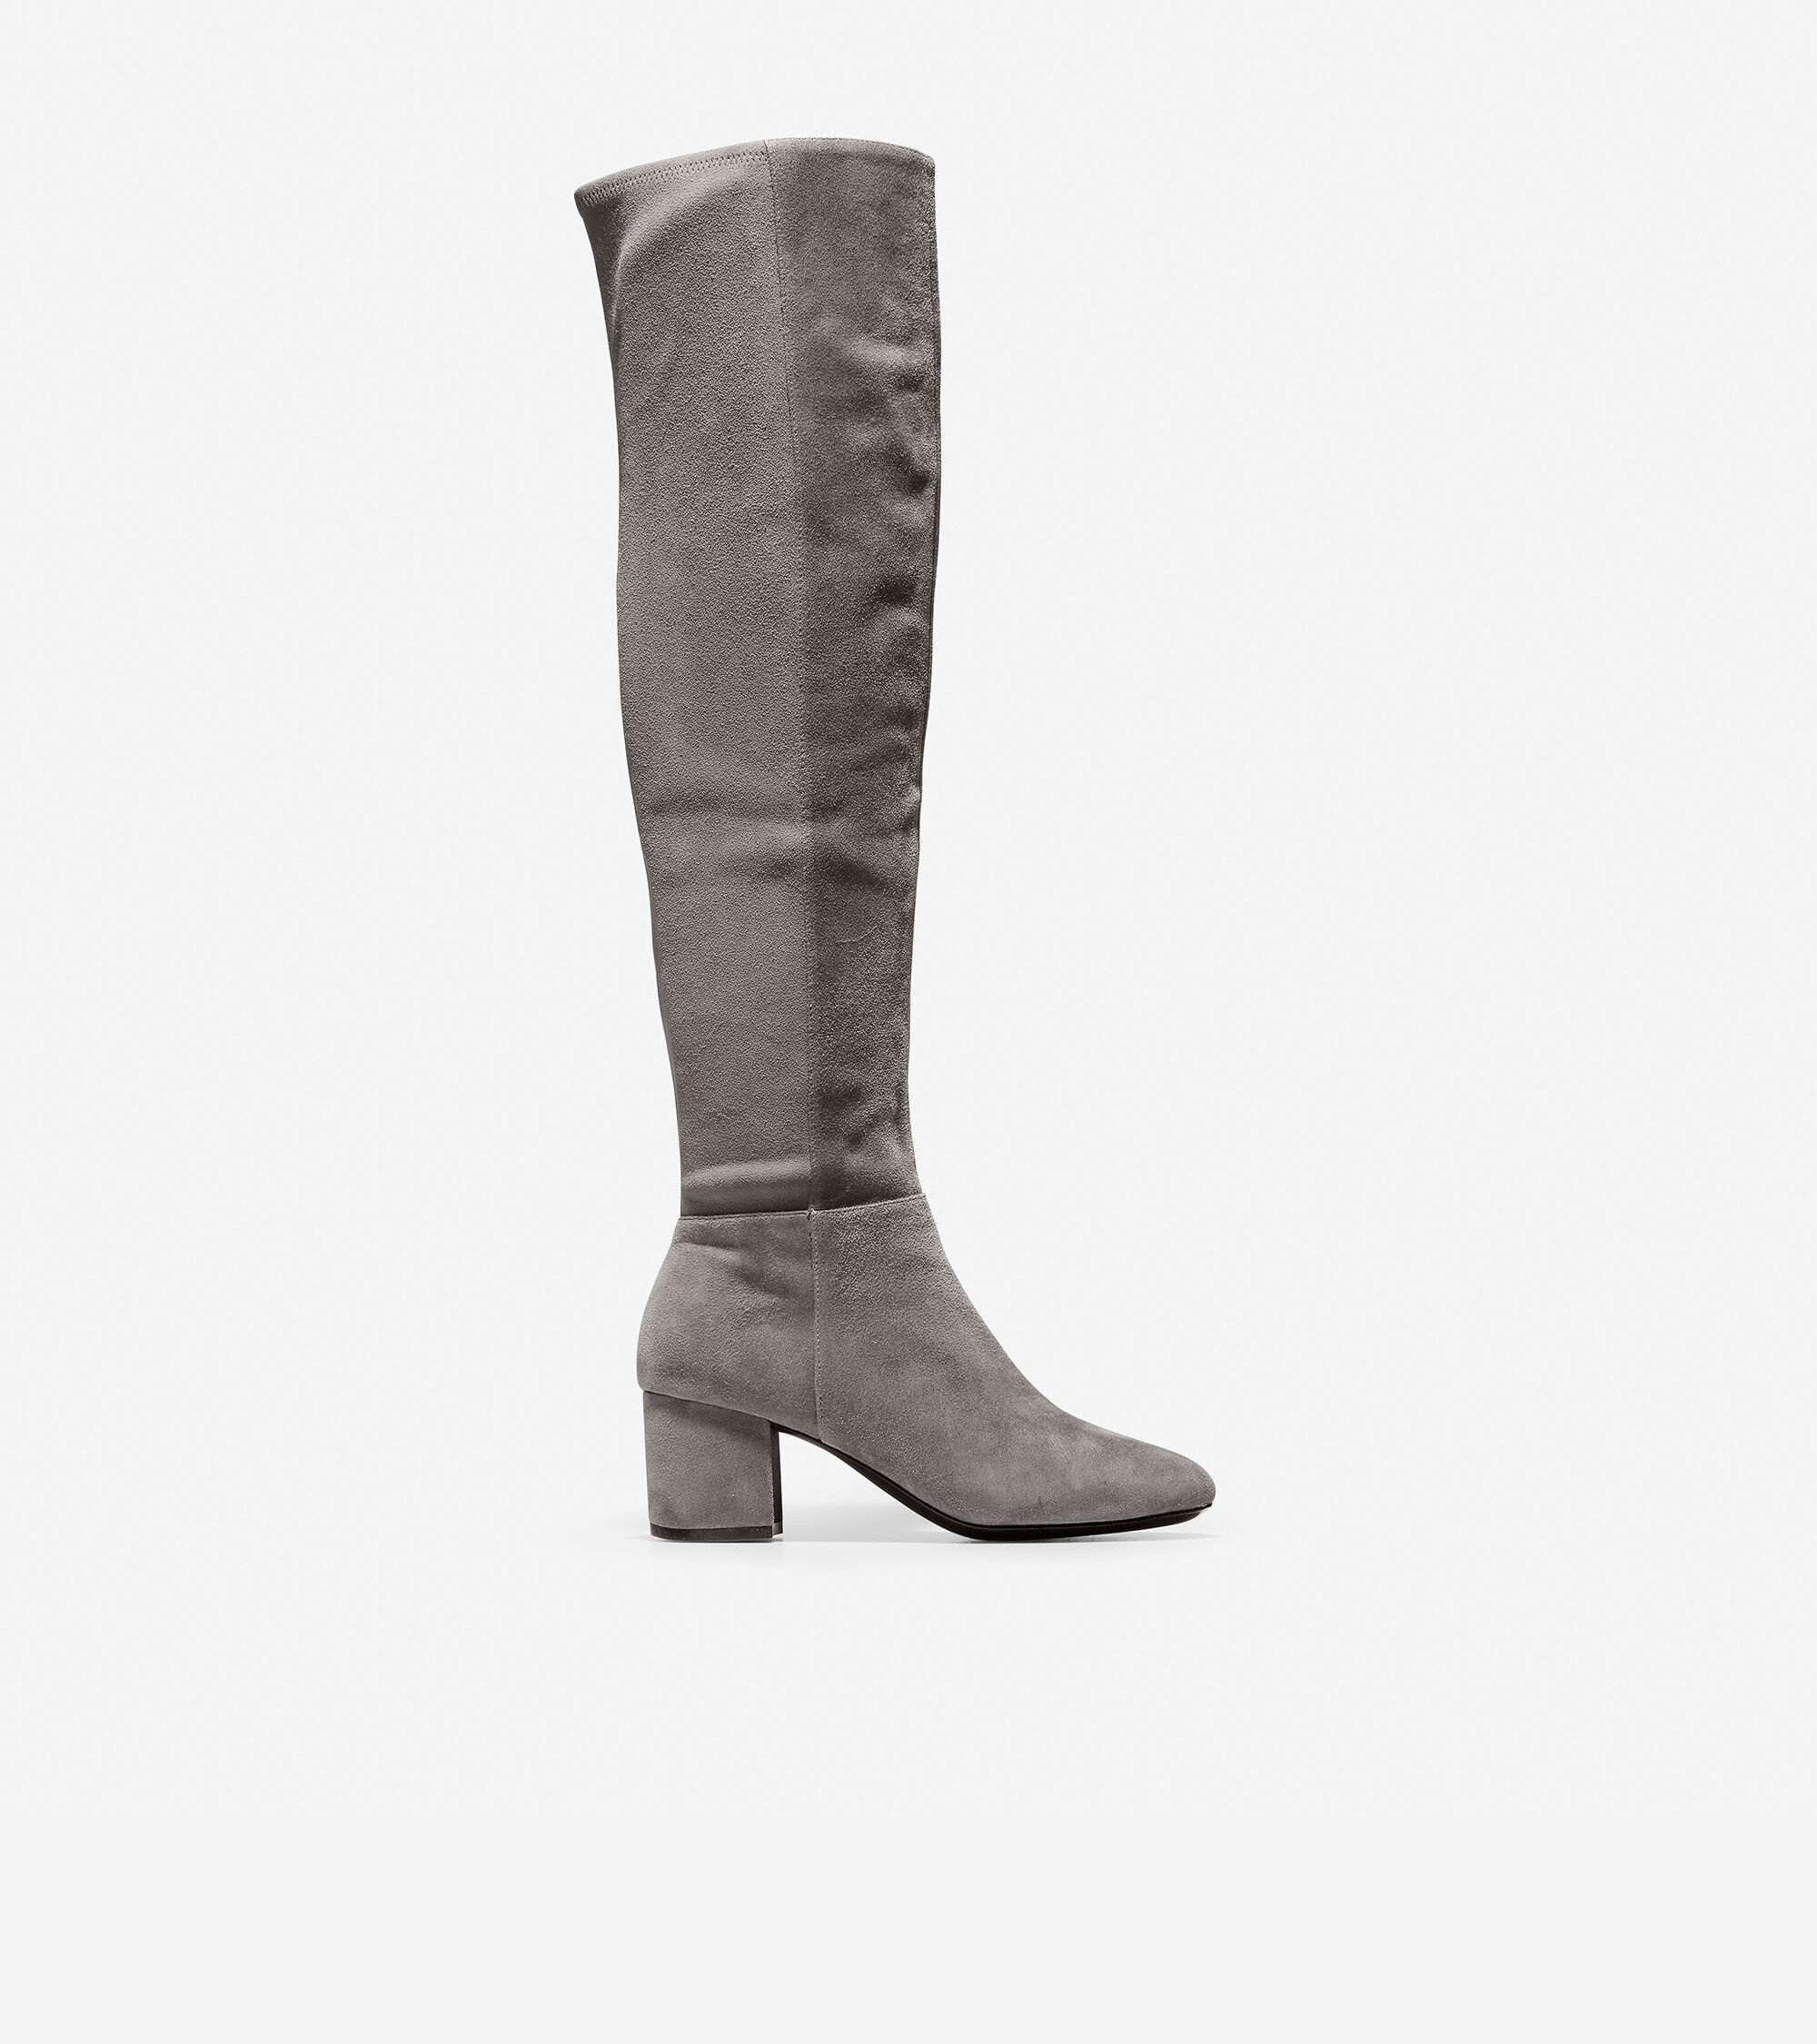 bb4abe8f724 Women s Elnora Over The Knee Boots 60mm in Stormcloud